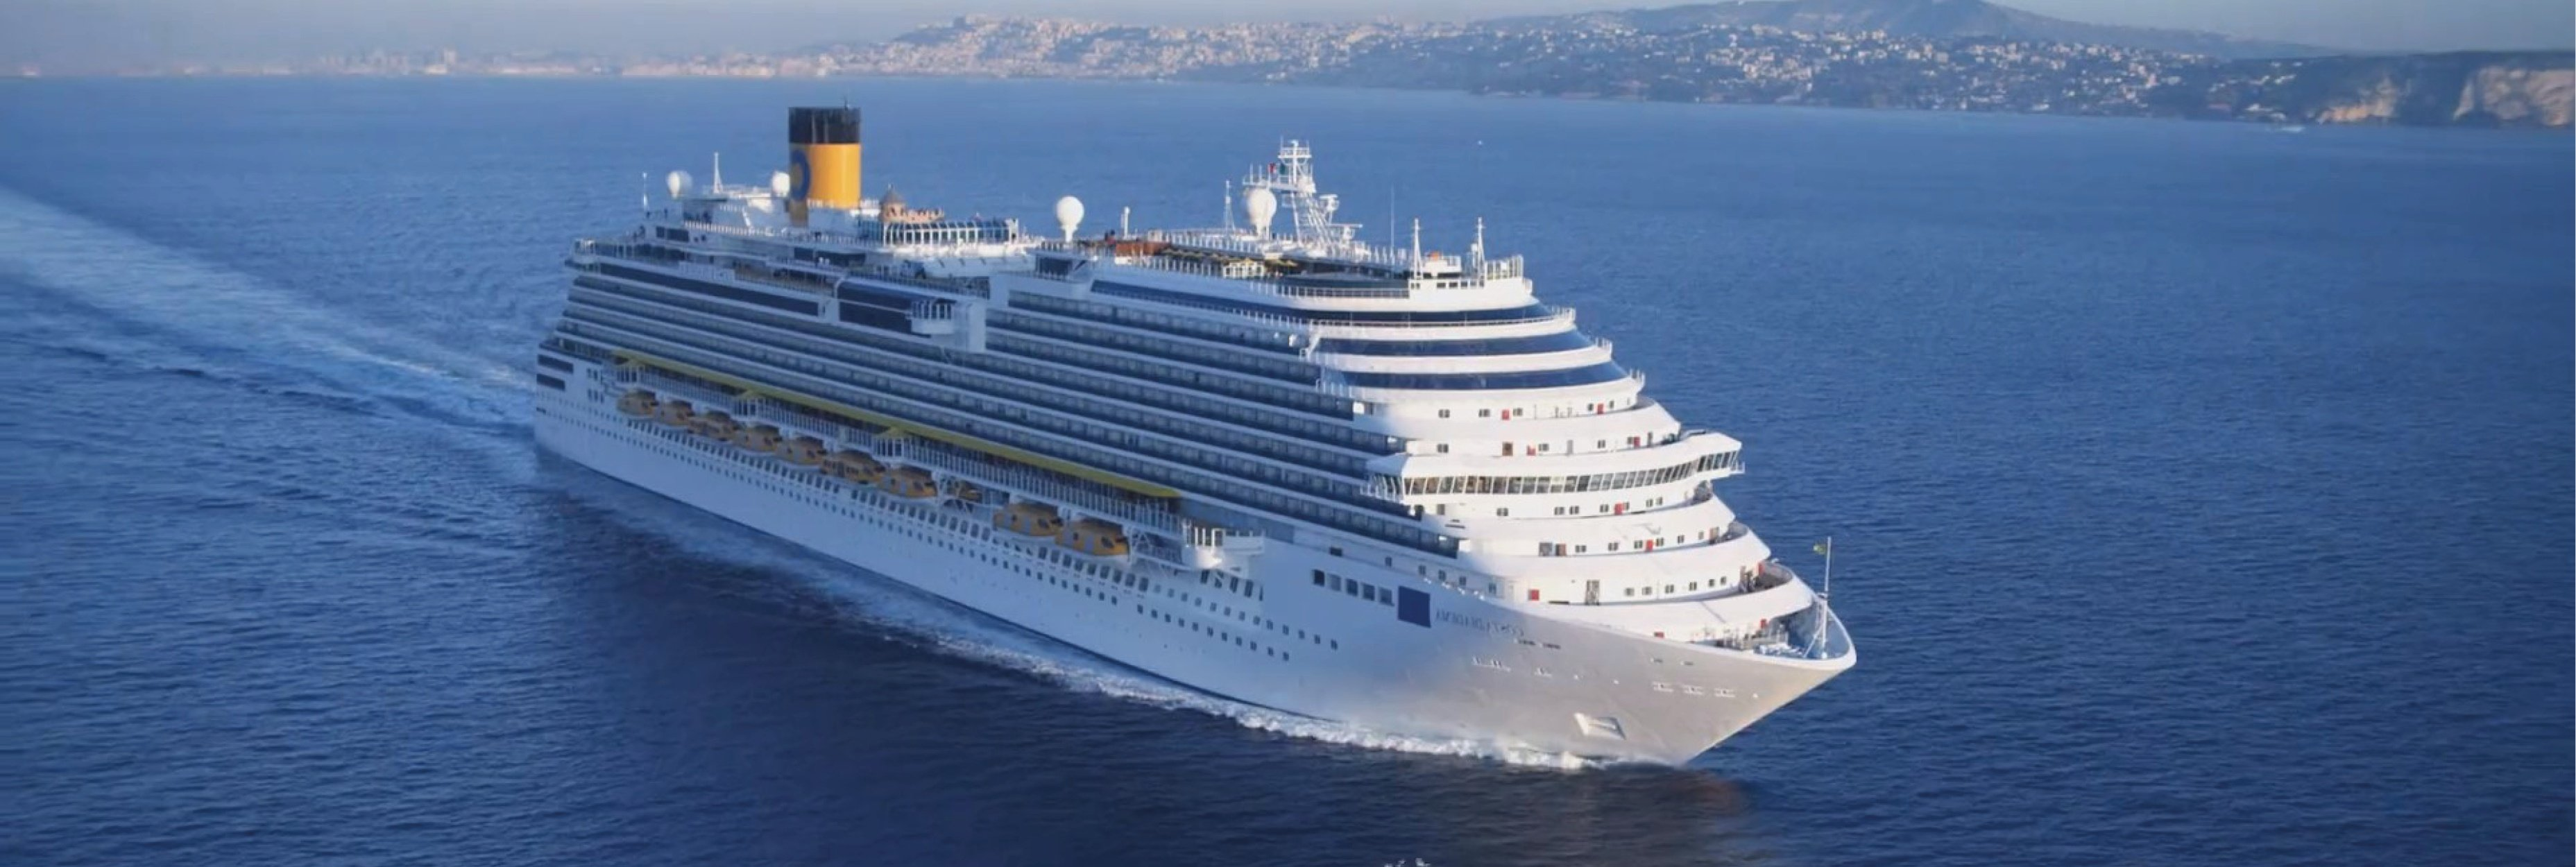 Winnow and Costa Cruises team up to halve food waste by 2020 in industry first